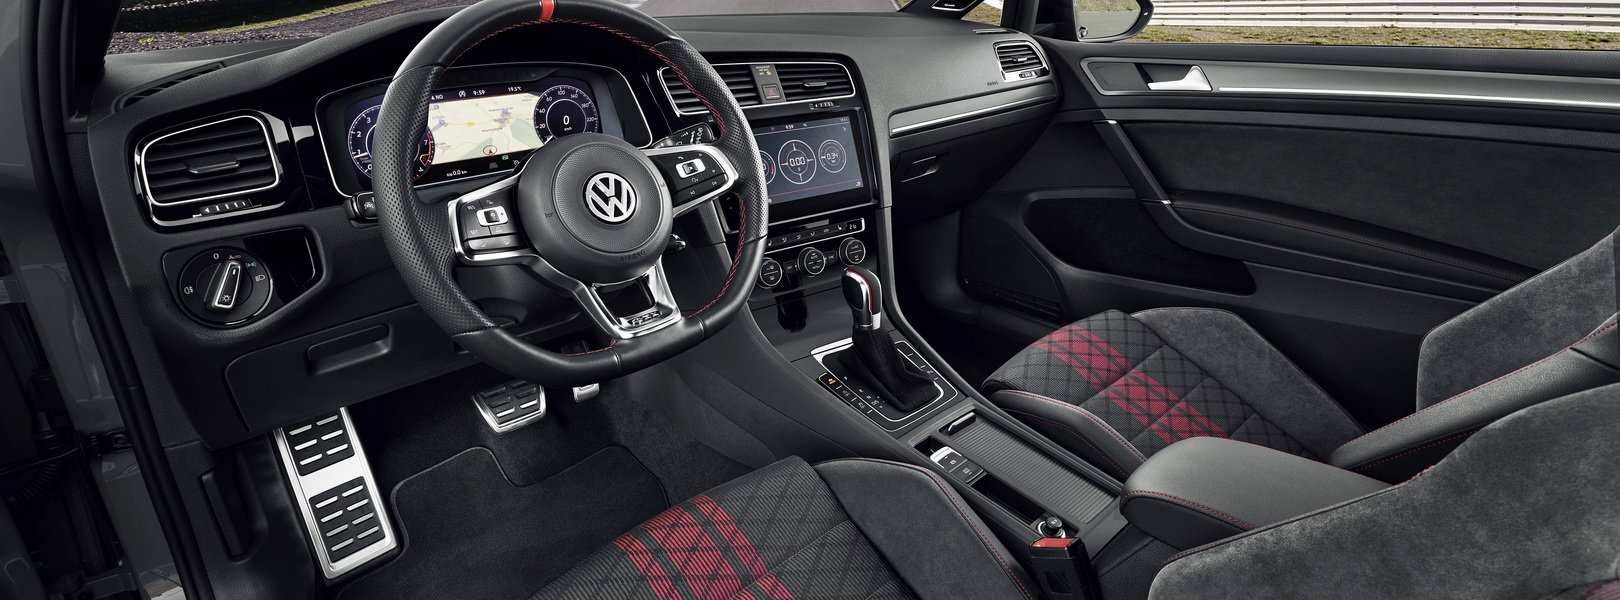 2020-vw-golf-gti-tcr-3.jpg